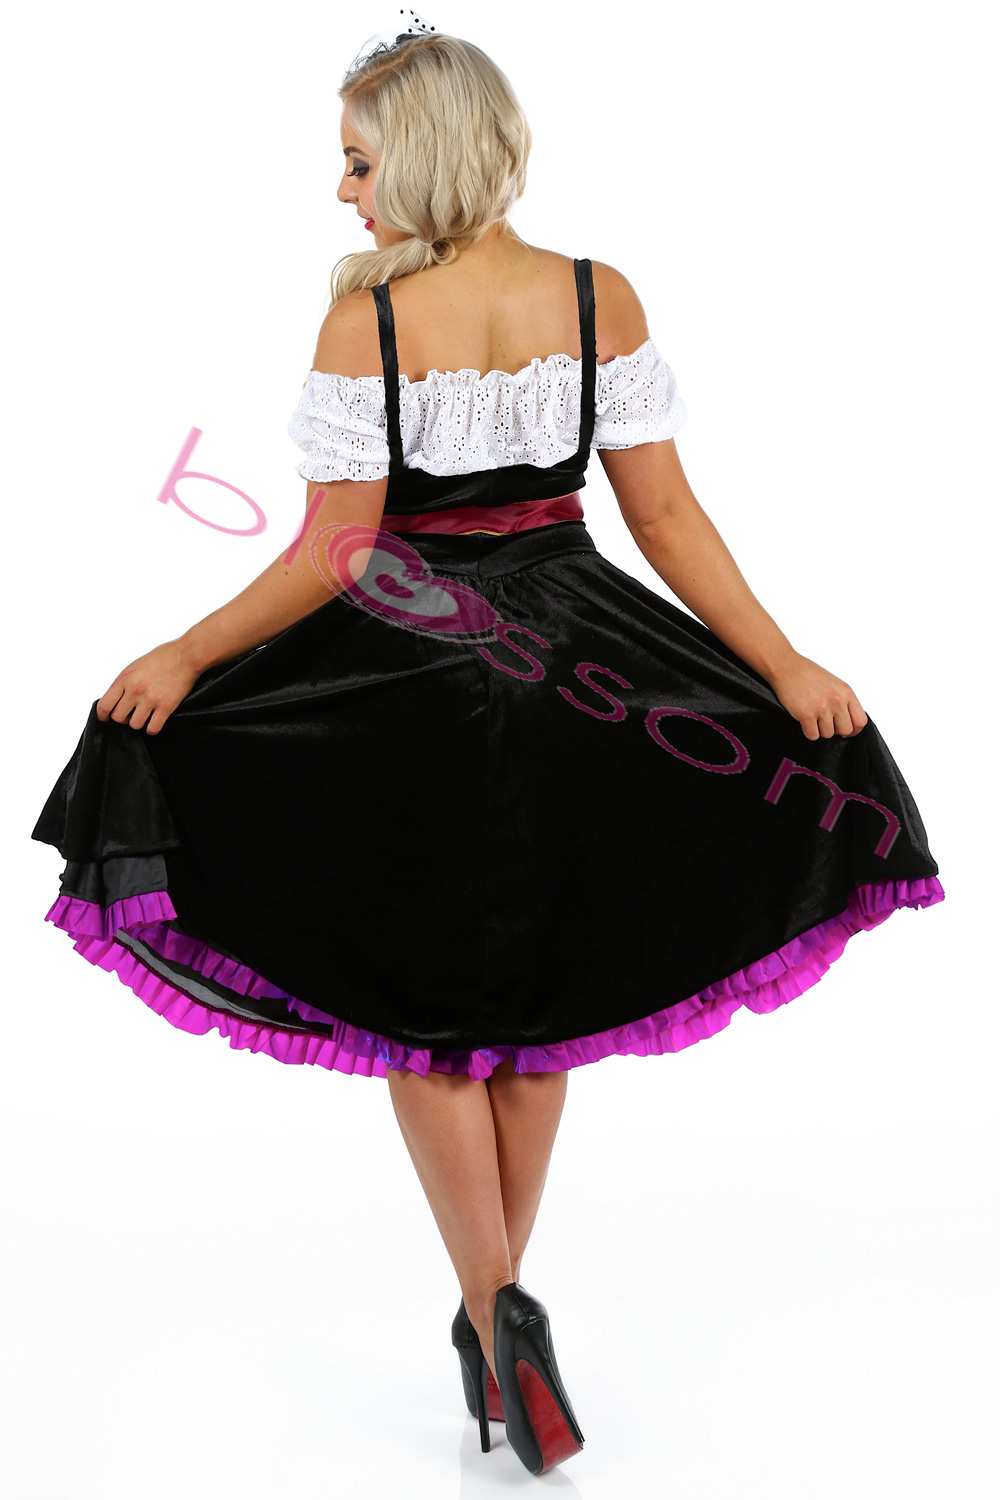 k86 deluxe oktoberfest beer maid dress up heidi costume. Black Bedroom Furniture Sets. Home Design Ideas